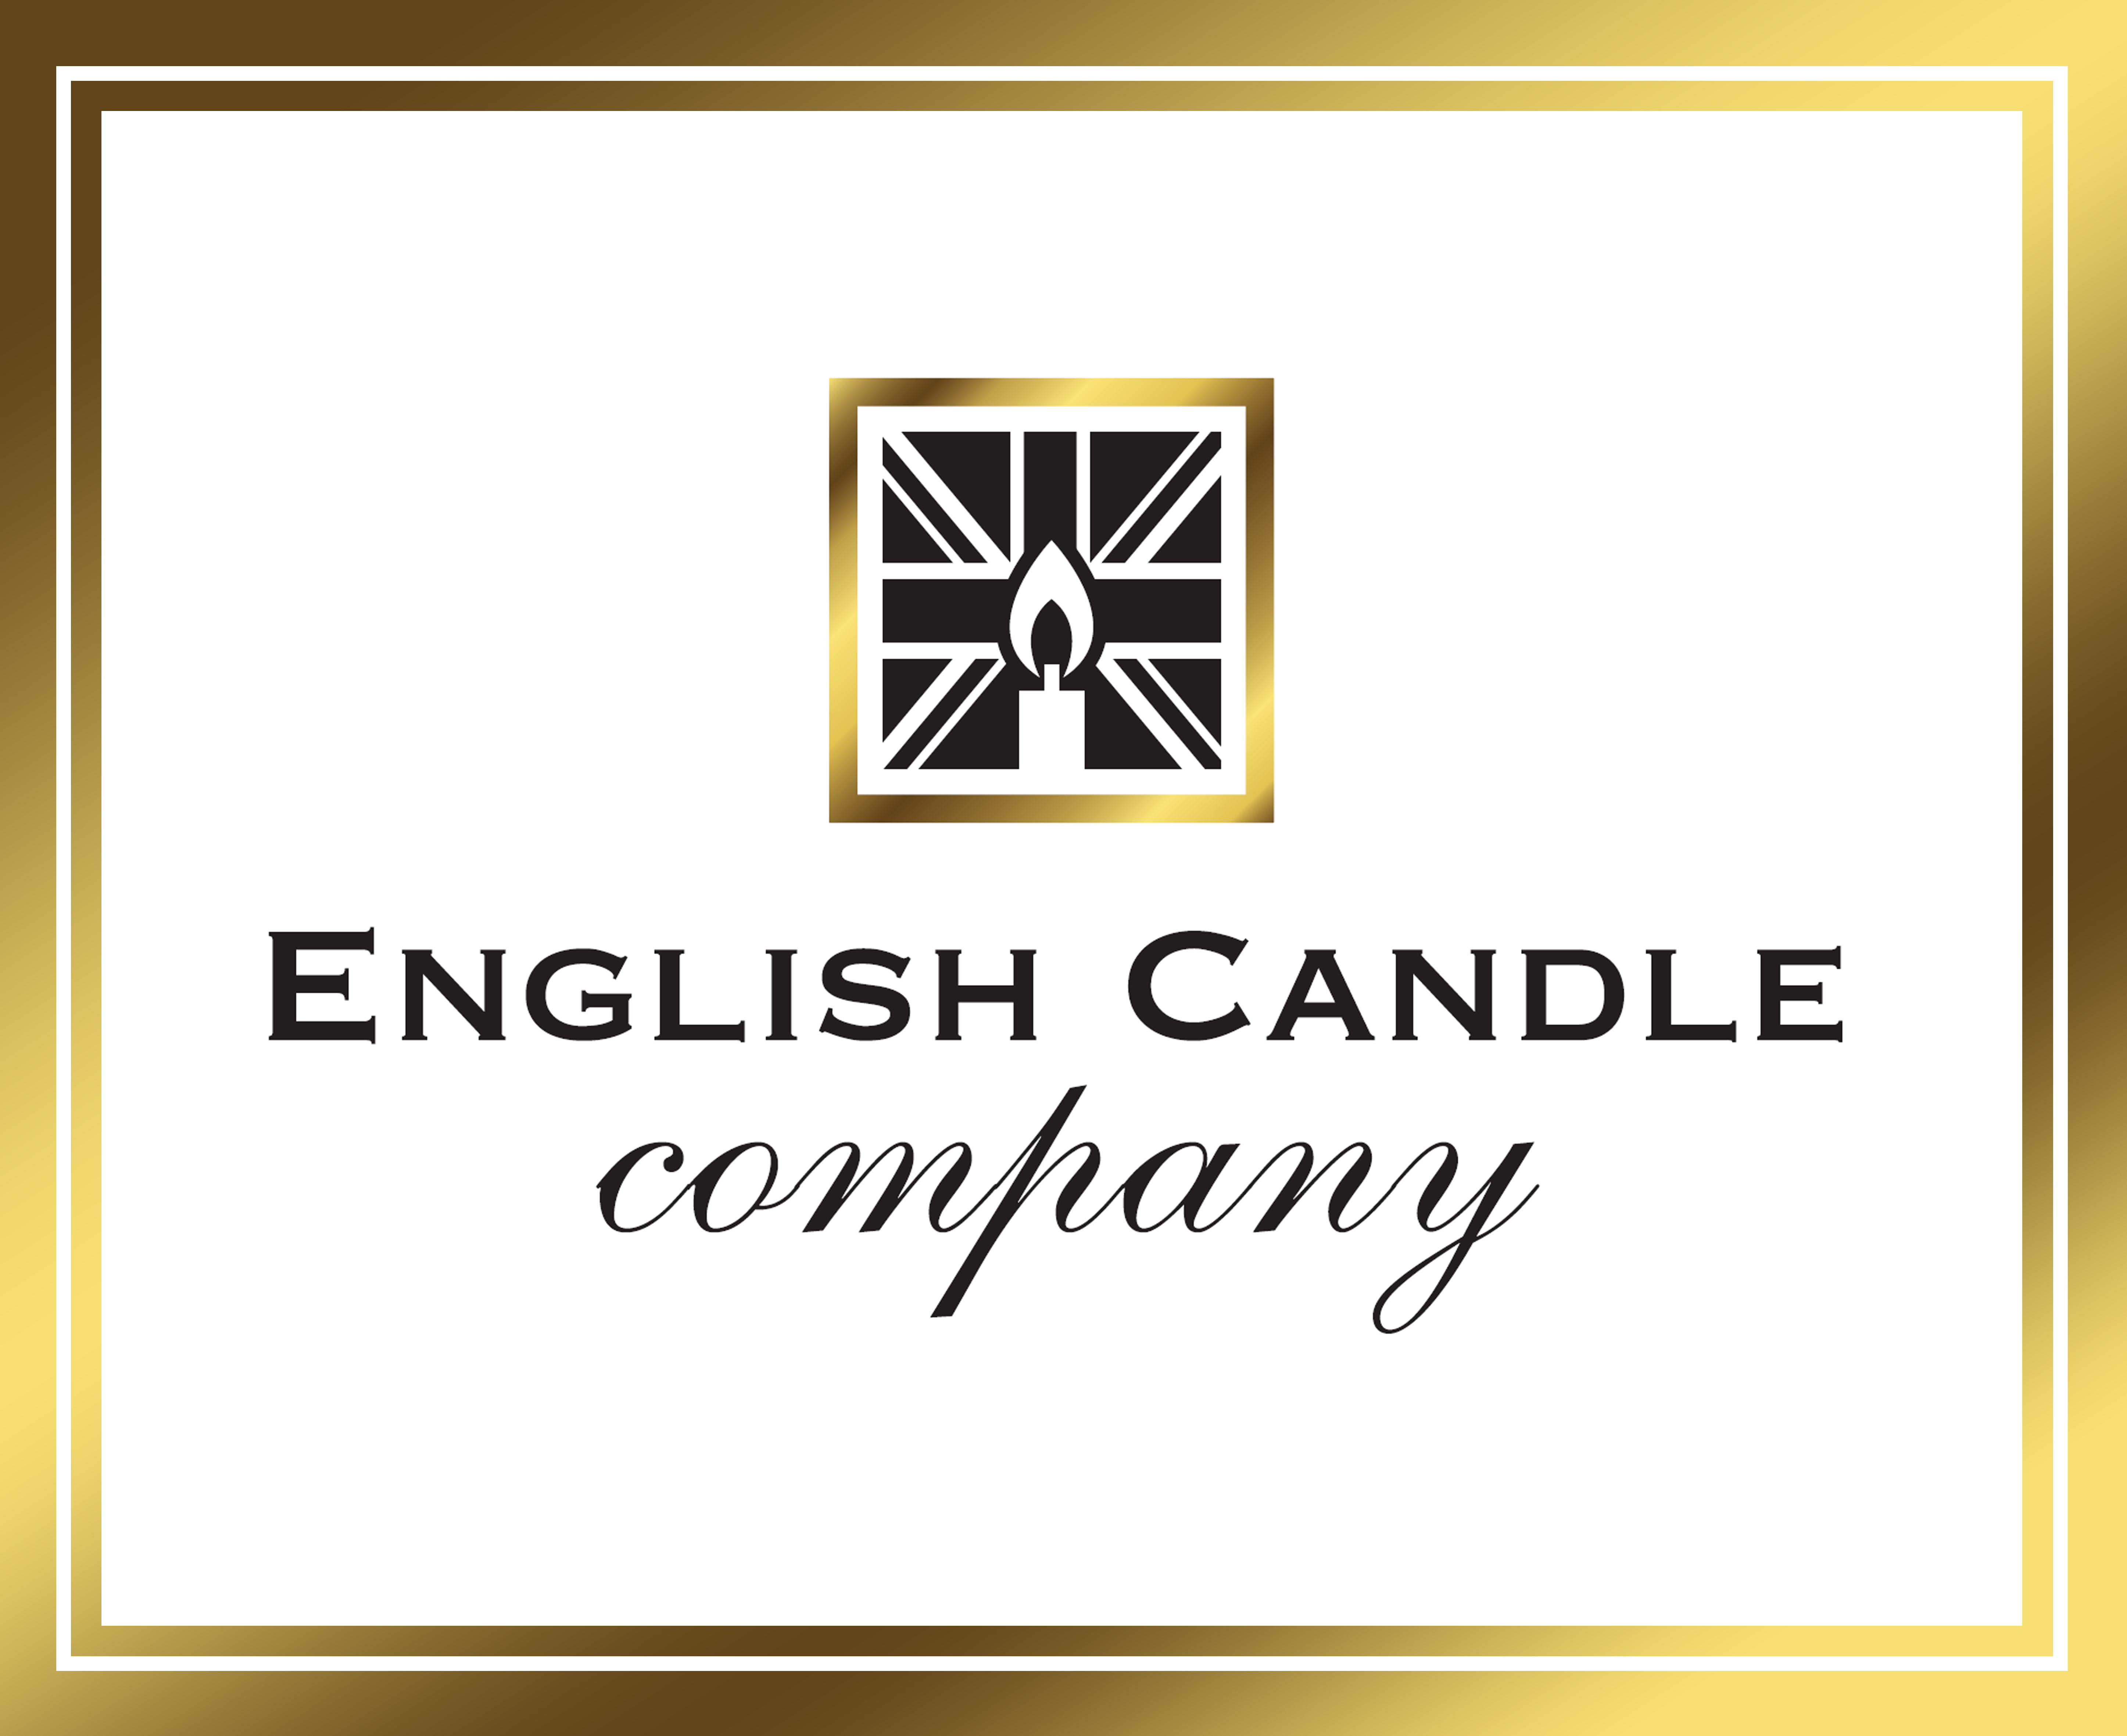 English Candle Co.